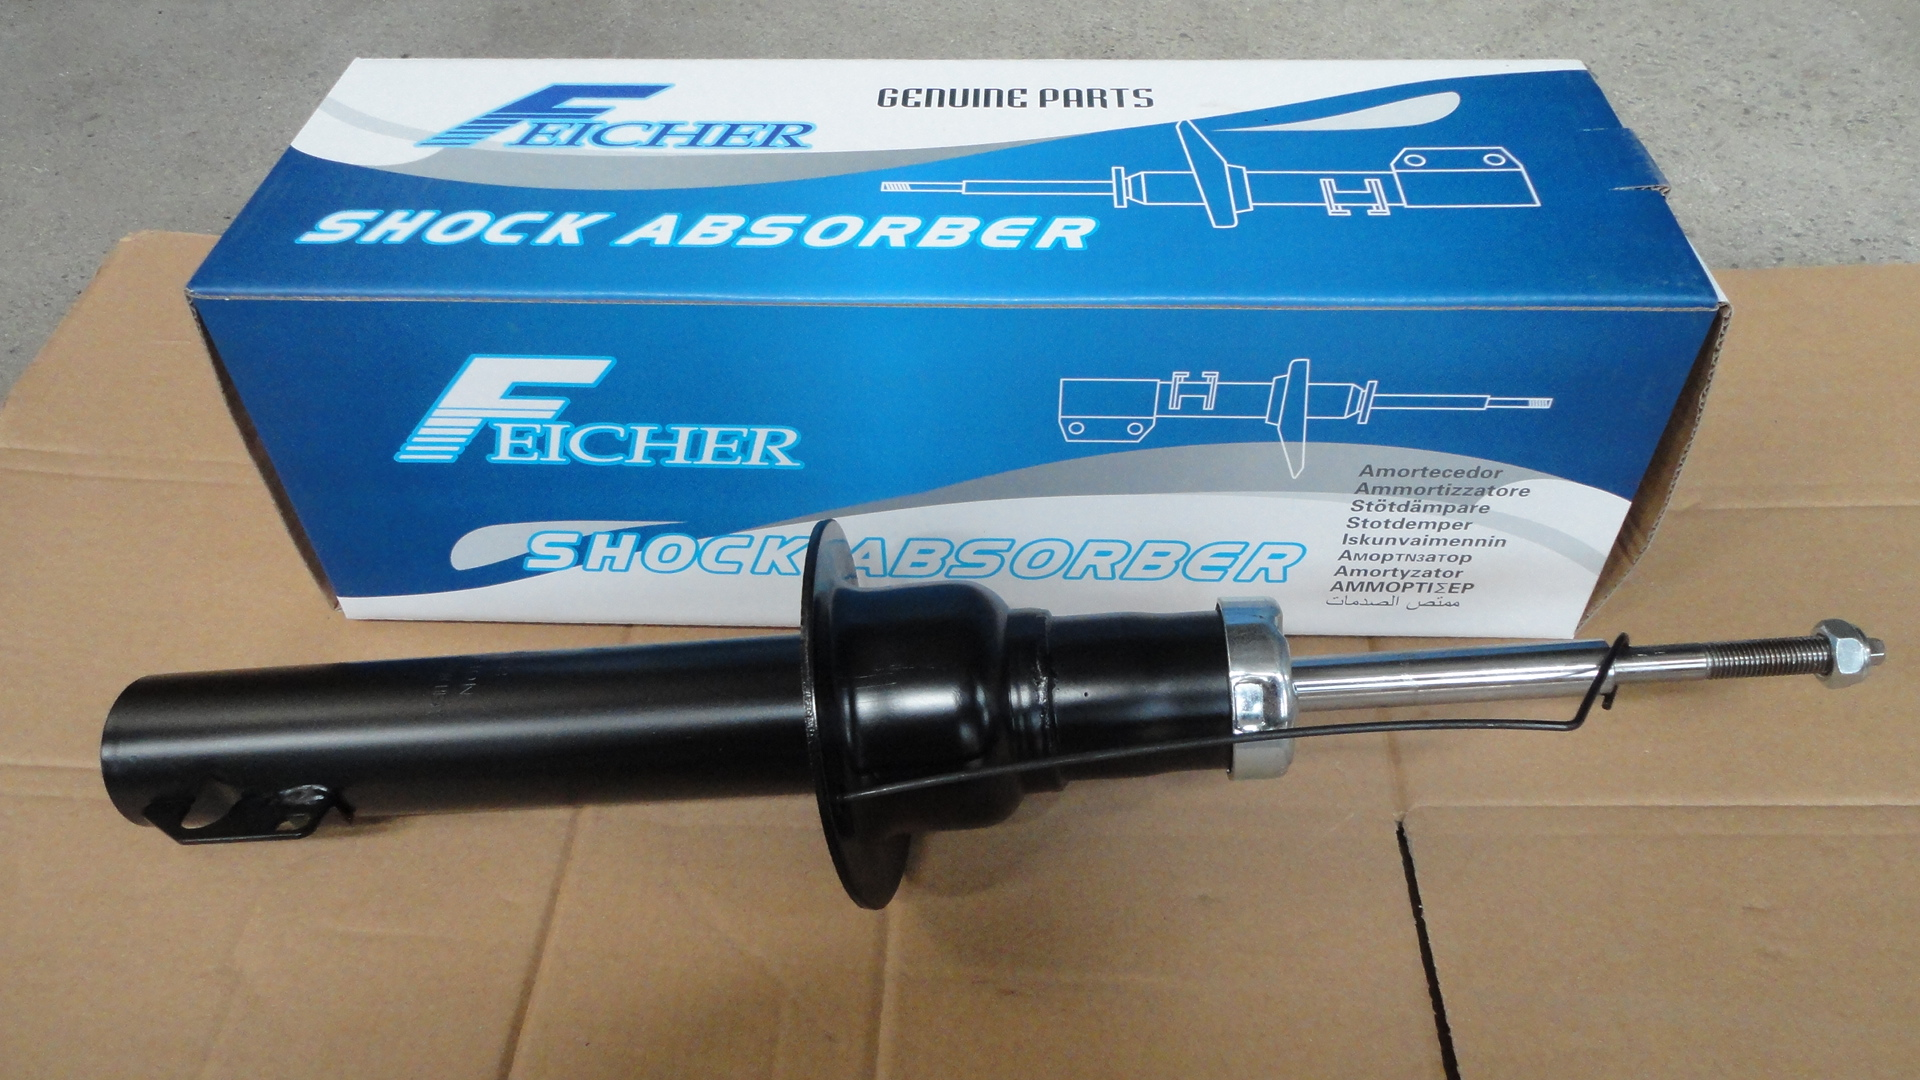 JEEP COMMANOER F Shock Absorber